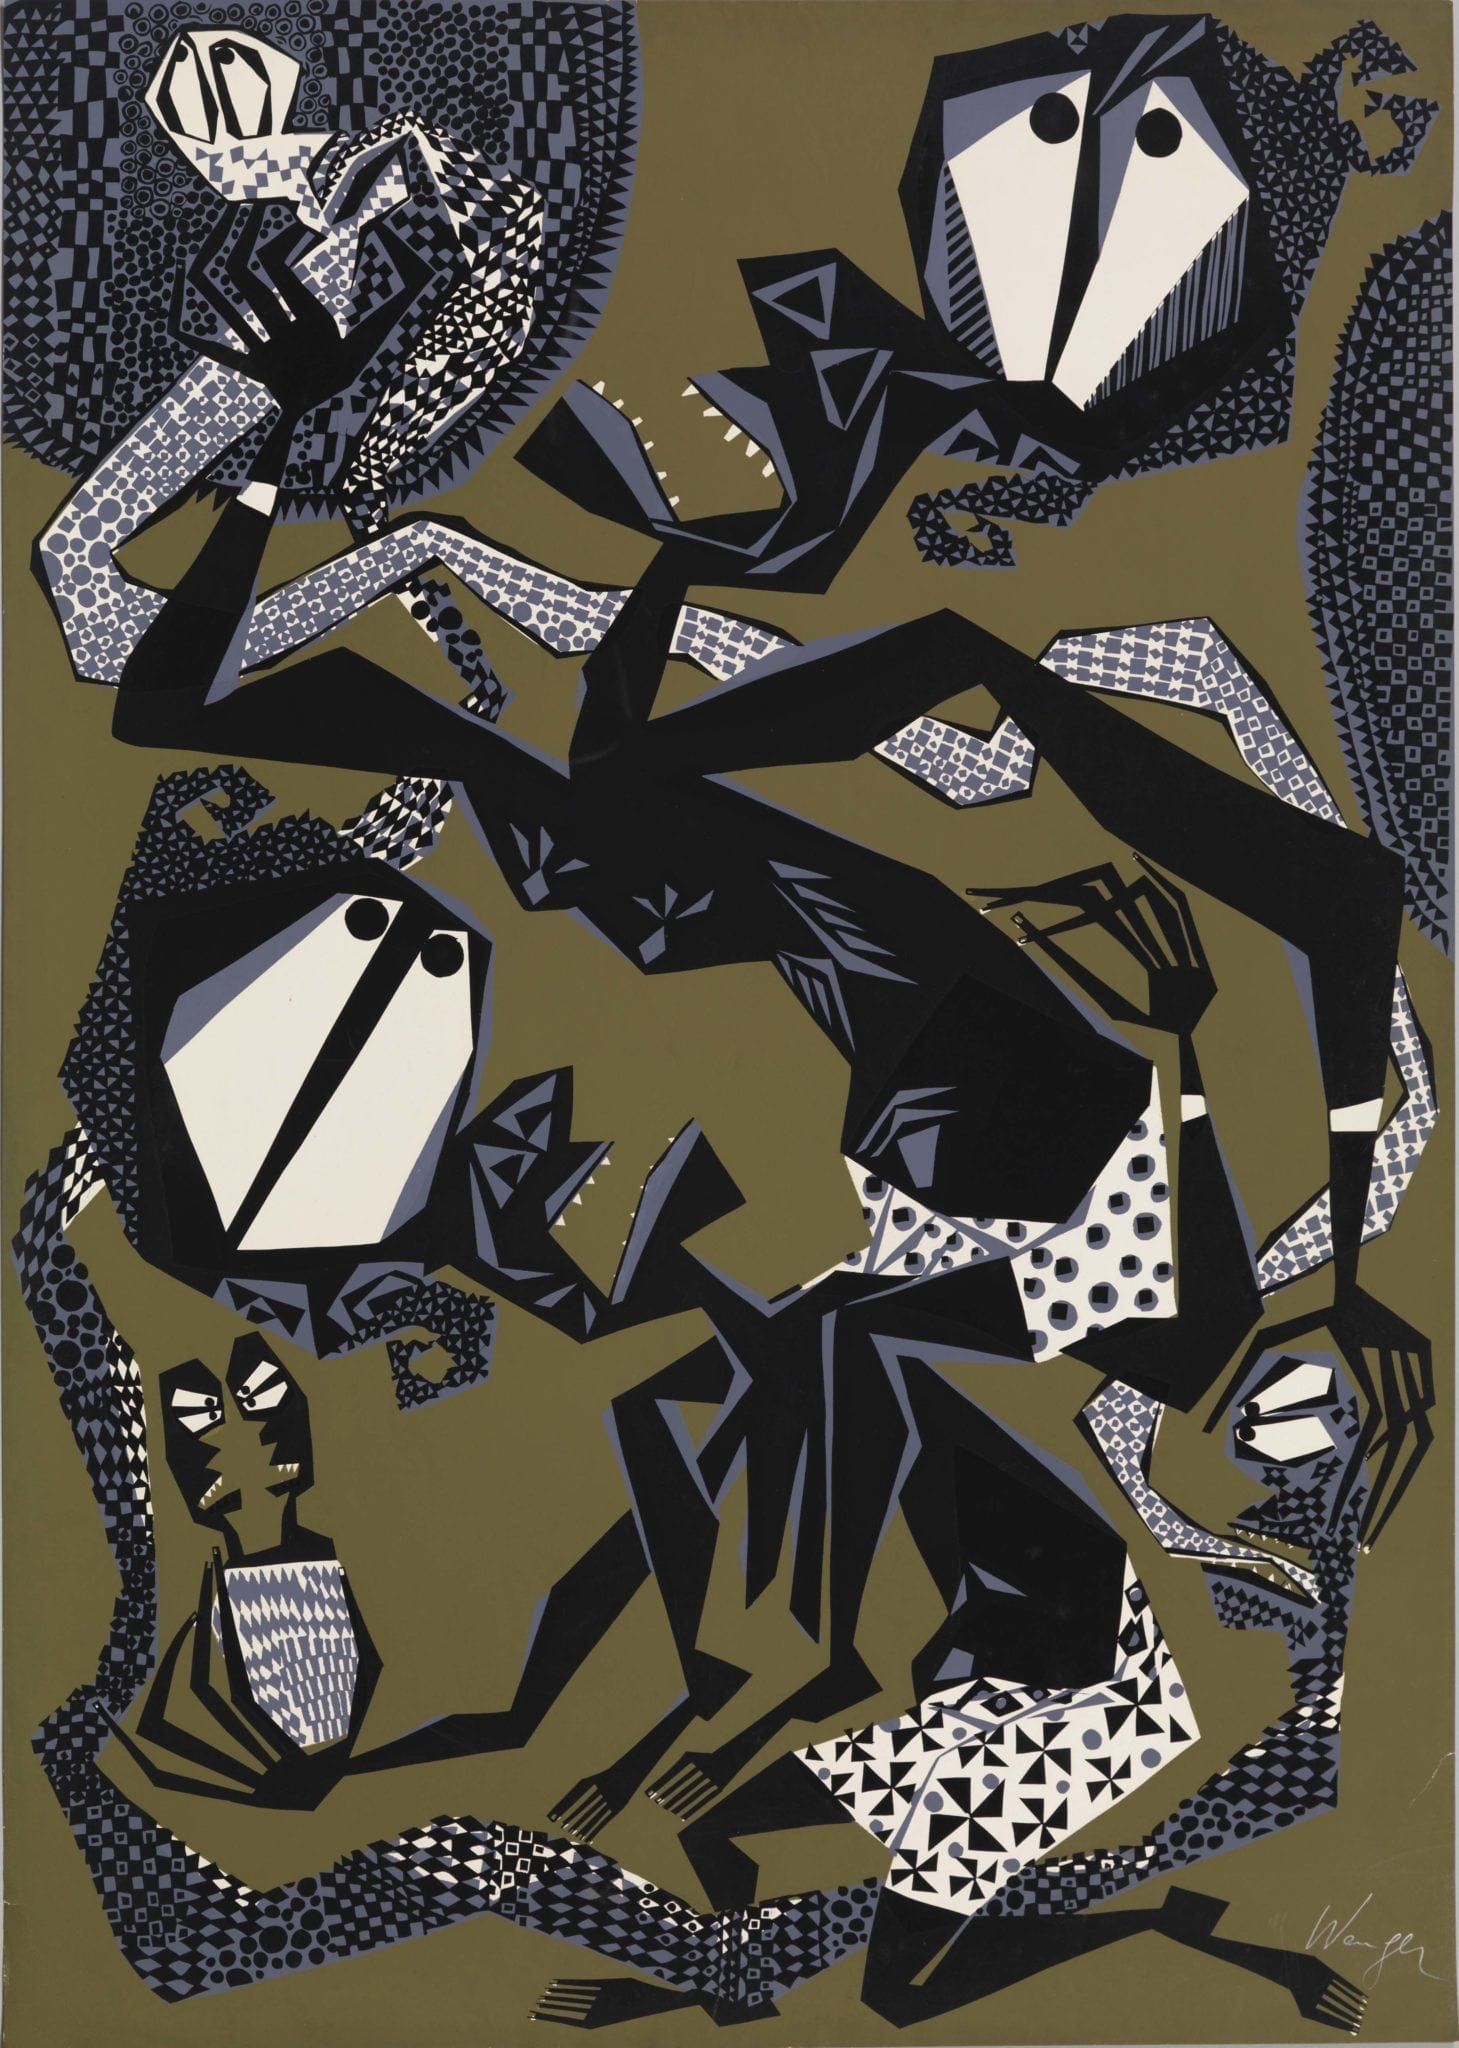 Susanne Wenger (Nigerian, Born Austria, 1915 – 2009) Untitled. ca. 1960. Screenprint. Gift of Graham and Maryagnes Kerr. © Susanne Wenger Foundation. Photo by Bruce M. White, 2014, courtesy of the Michael C. Carlos Museum, Emory University.